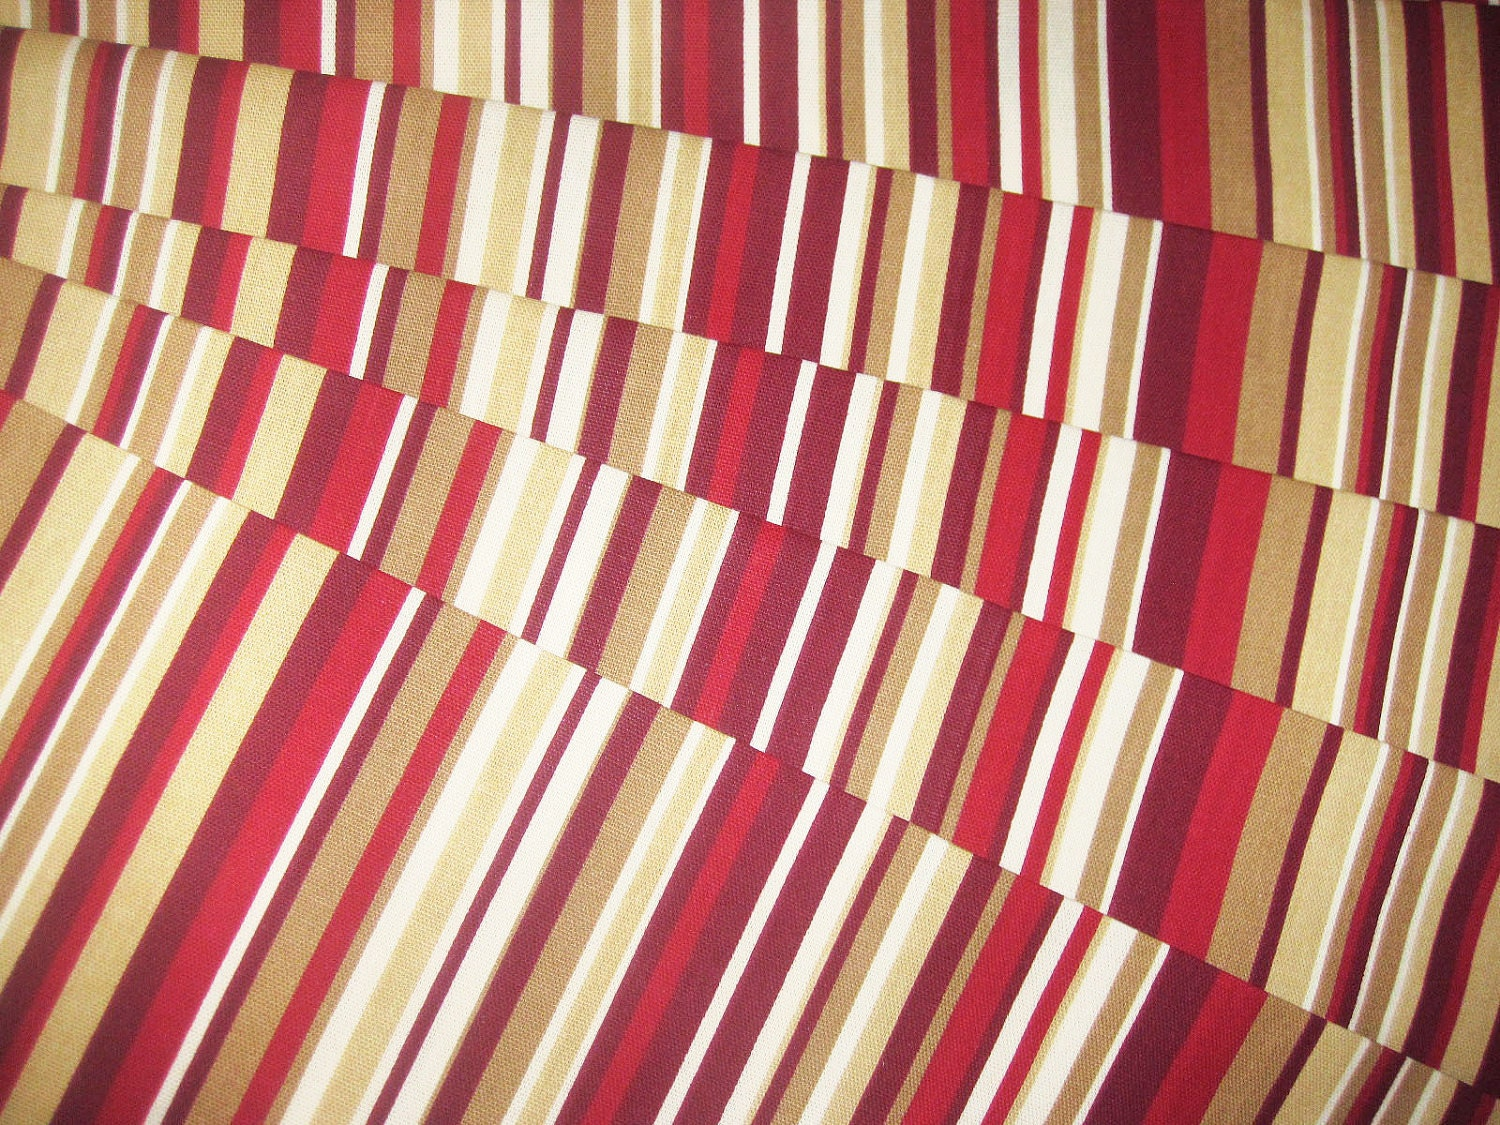 Valance Curtain Red and Cream Stripes 43 by bananabunch on Etsy